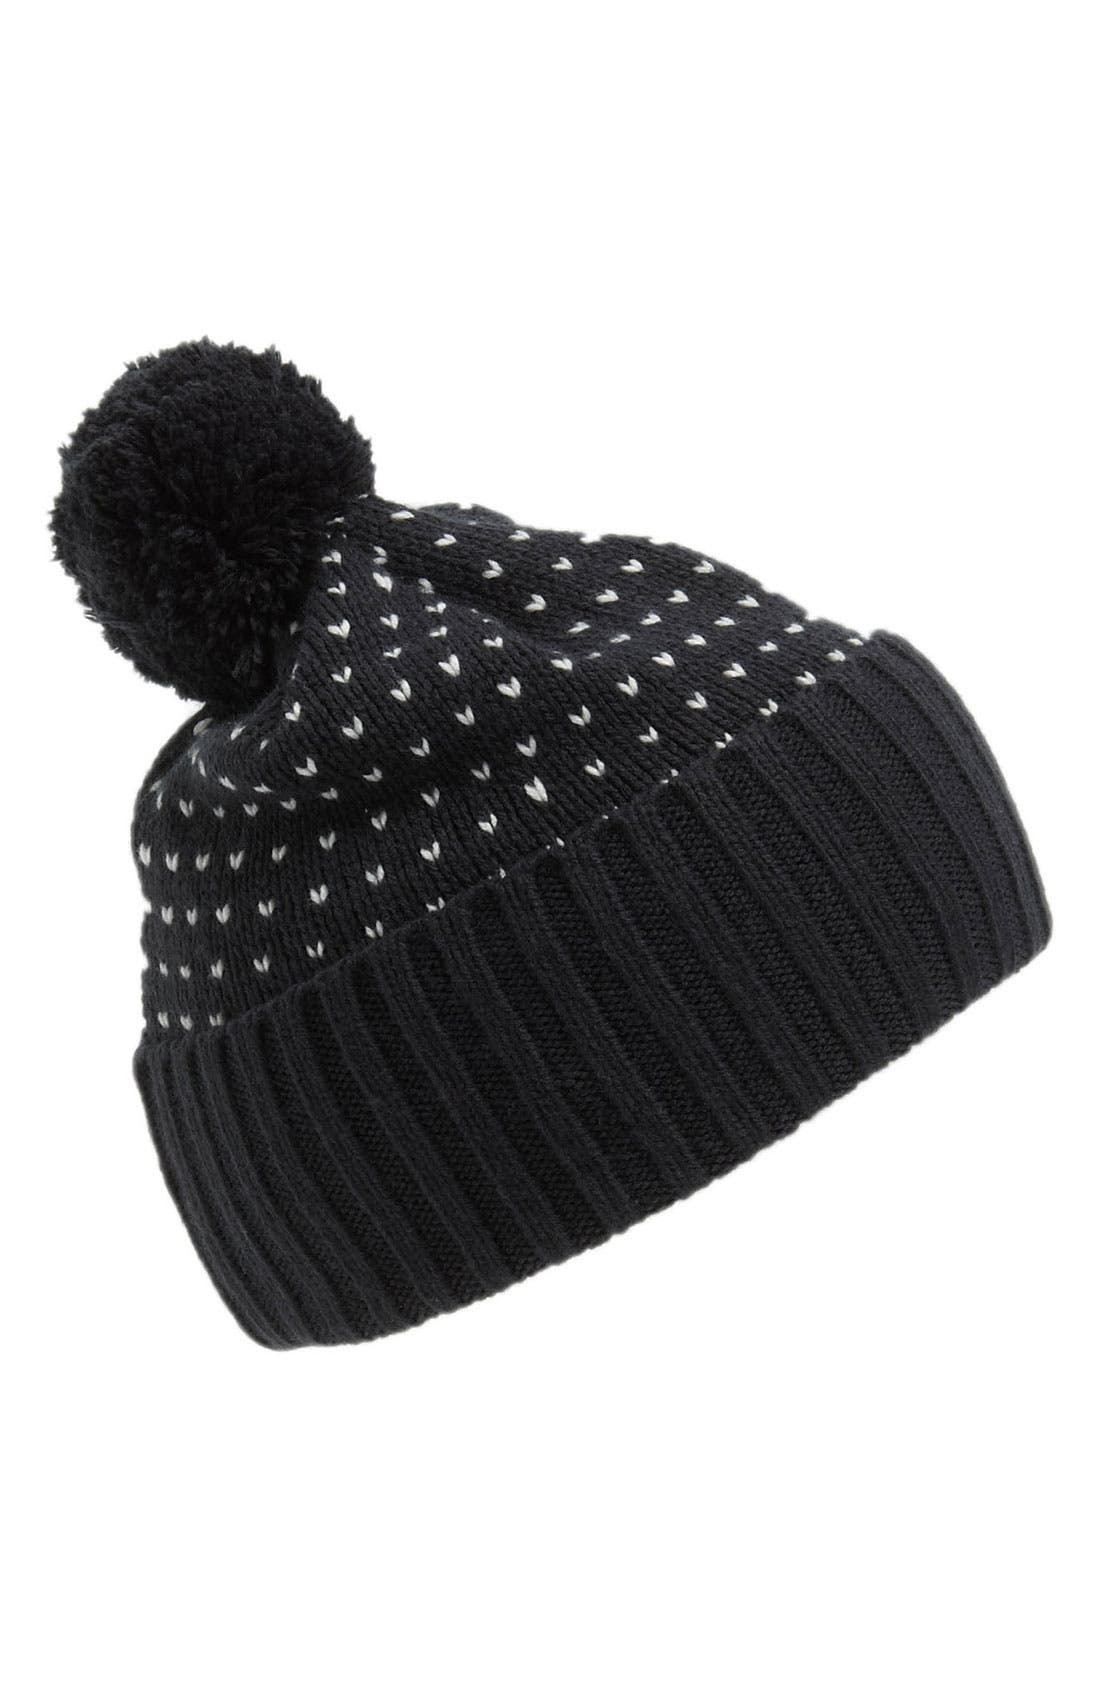 Alternate Image 1 Selected - Topman 'Sparrow' Pompom Beanie